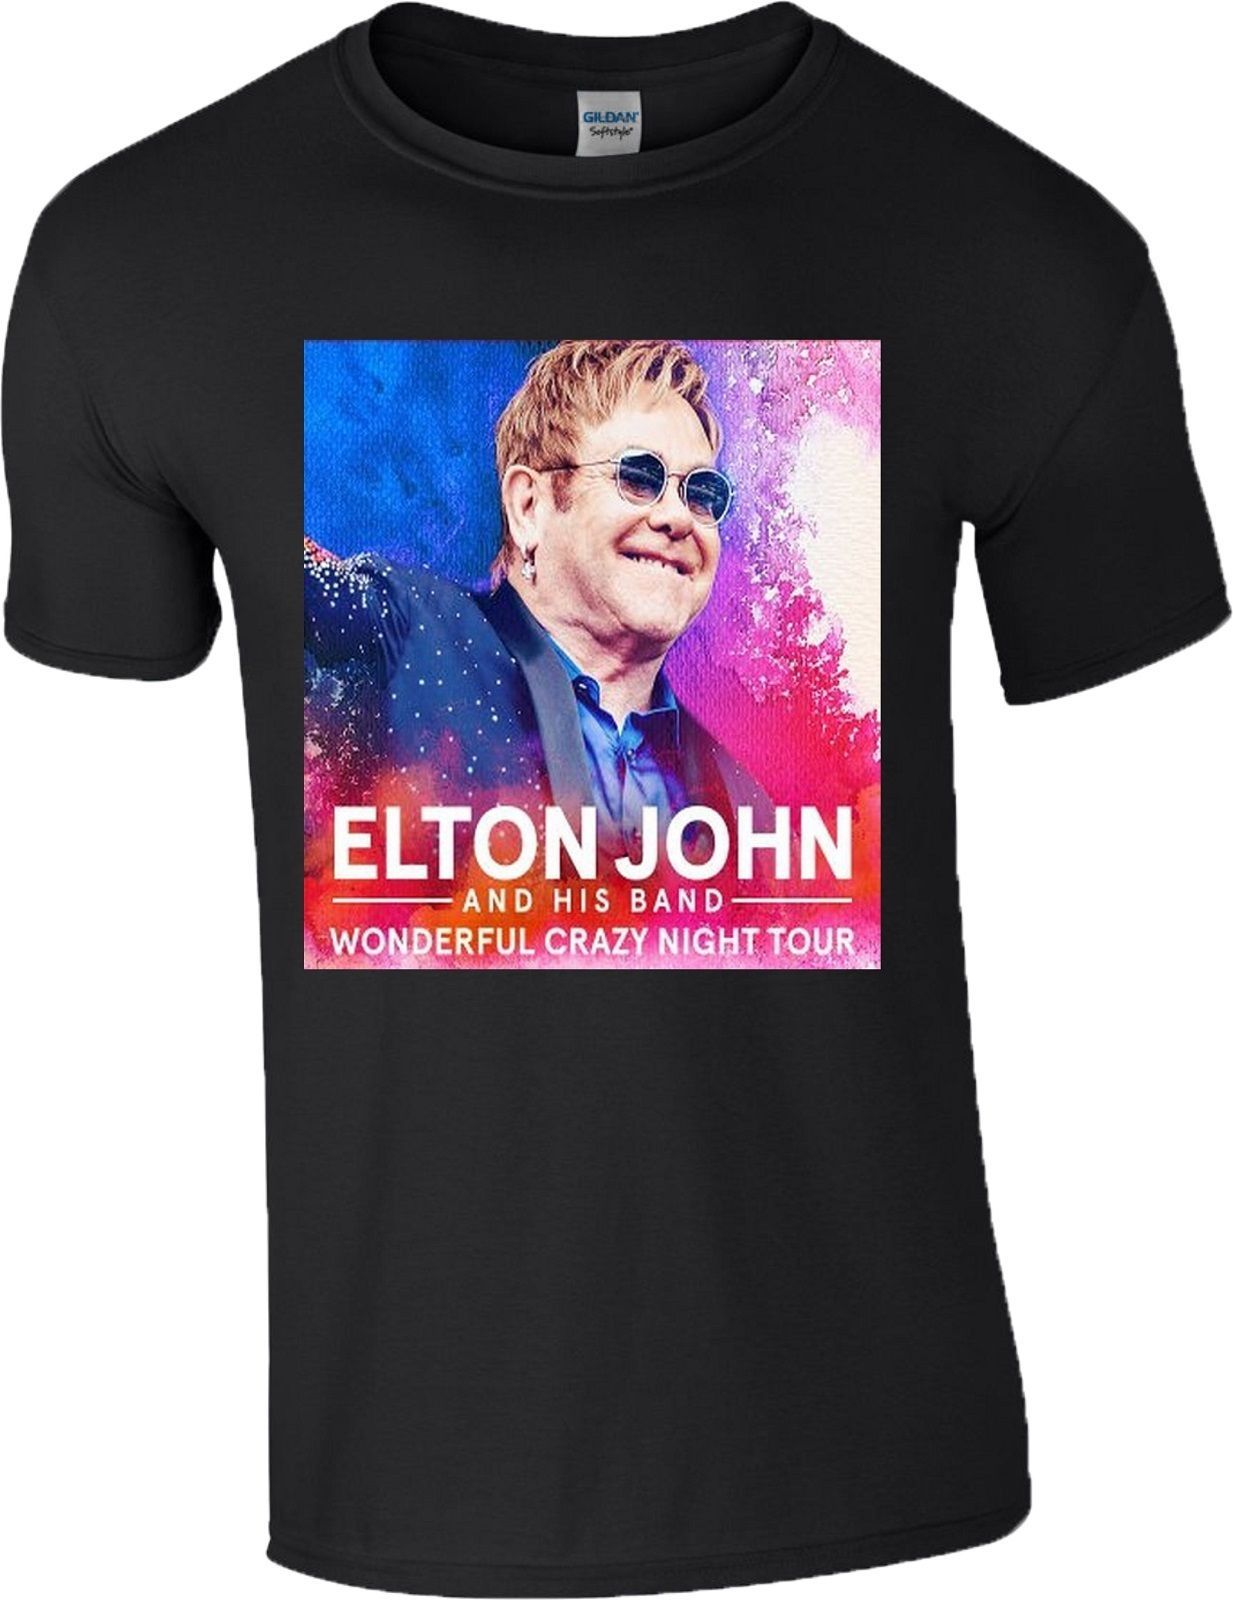 Interesting Short Sleeve Men Printing Machine Elton John Wonderful Crazy Night Tour 2017 Music Band Pop Top Crew Neck T Shirts